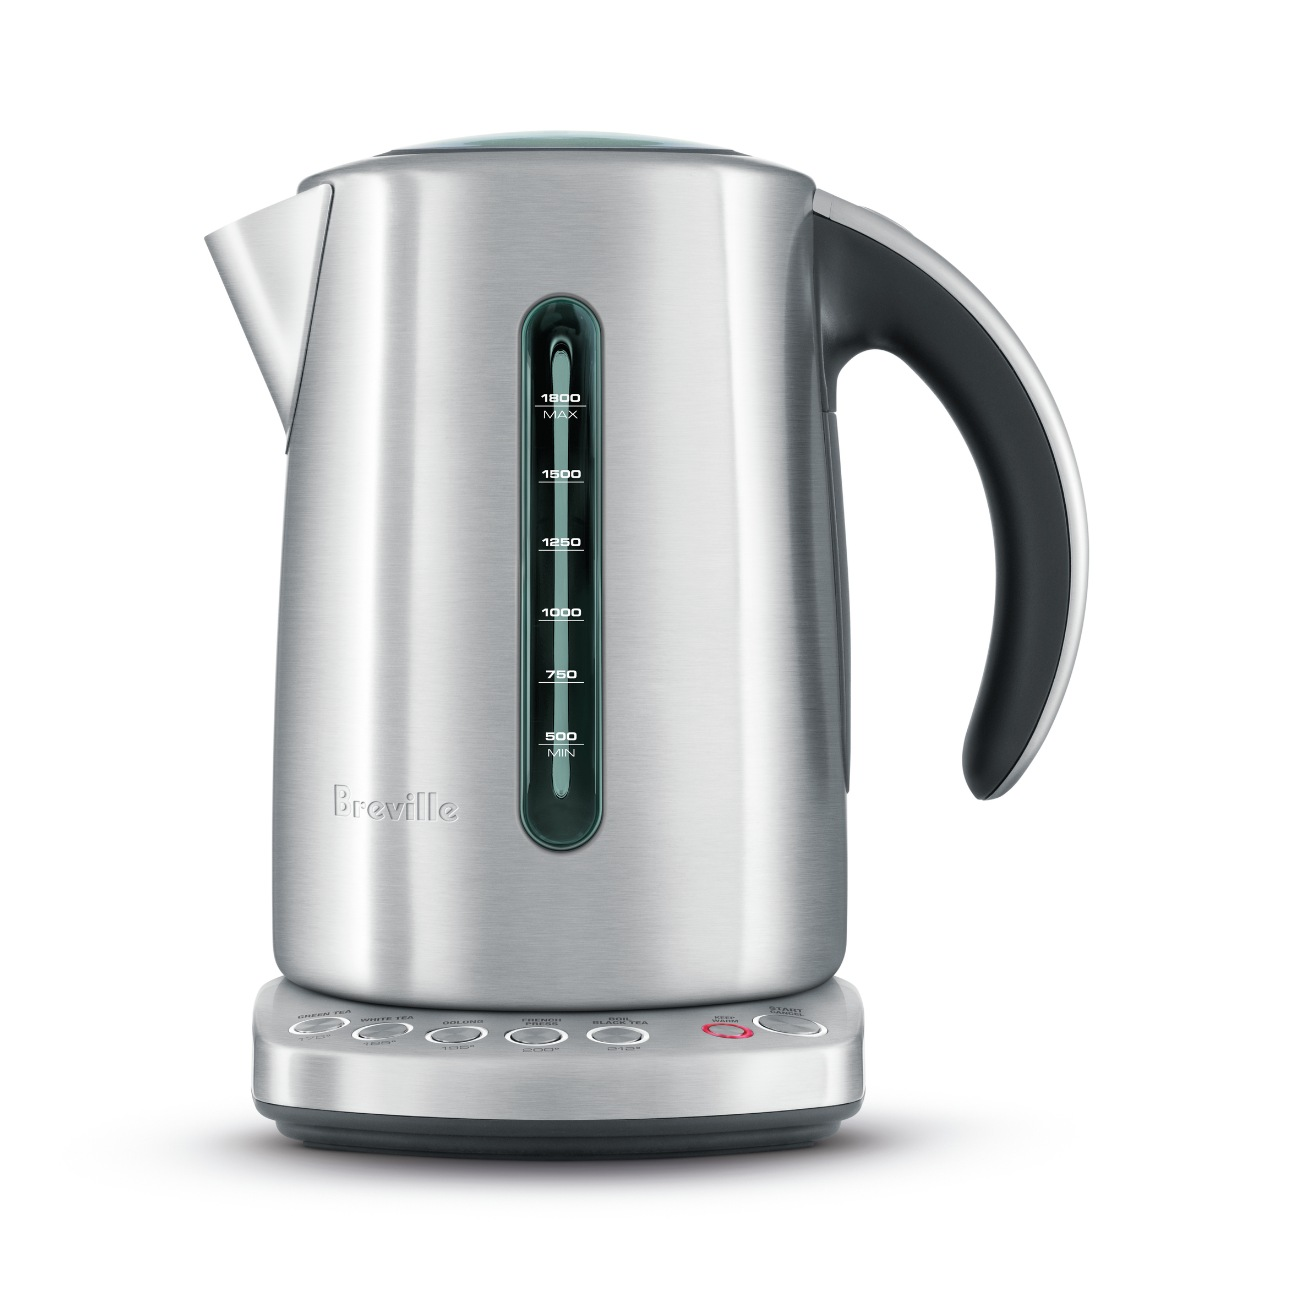 The Iq Kettle